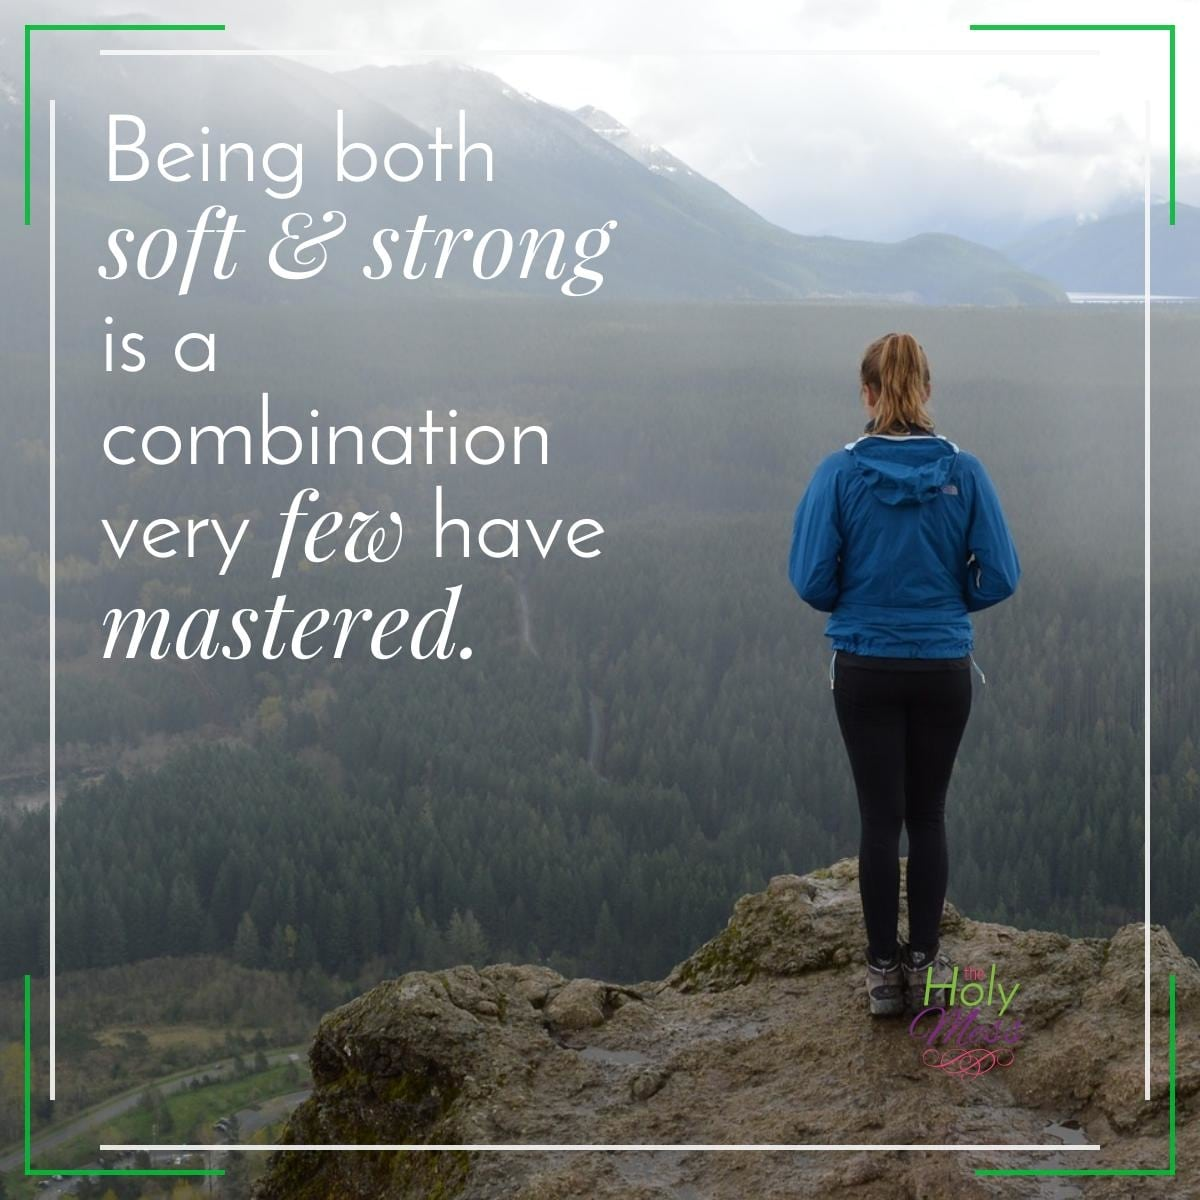 Being both soft and strong is a combination few have mastered.|The Holy Mess